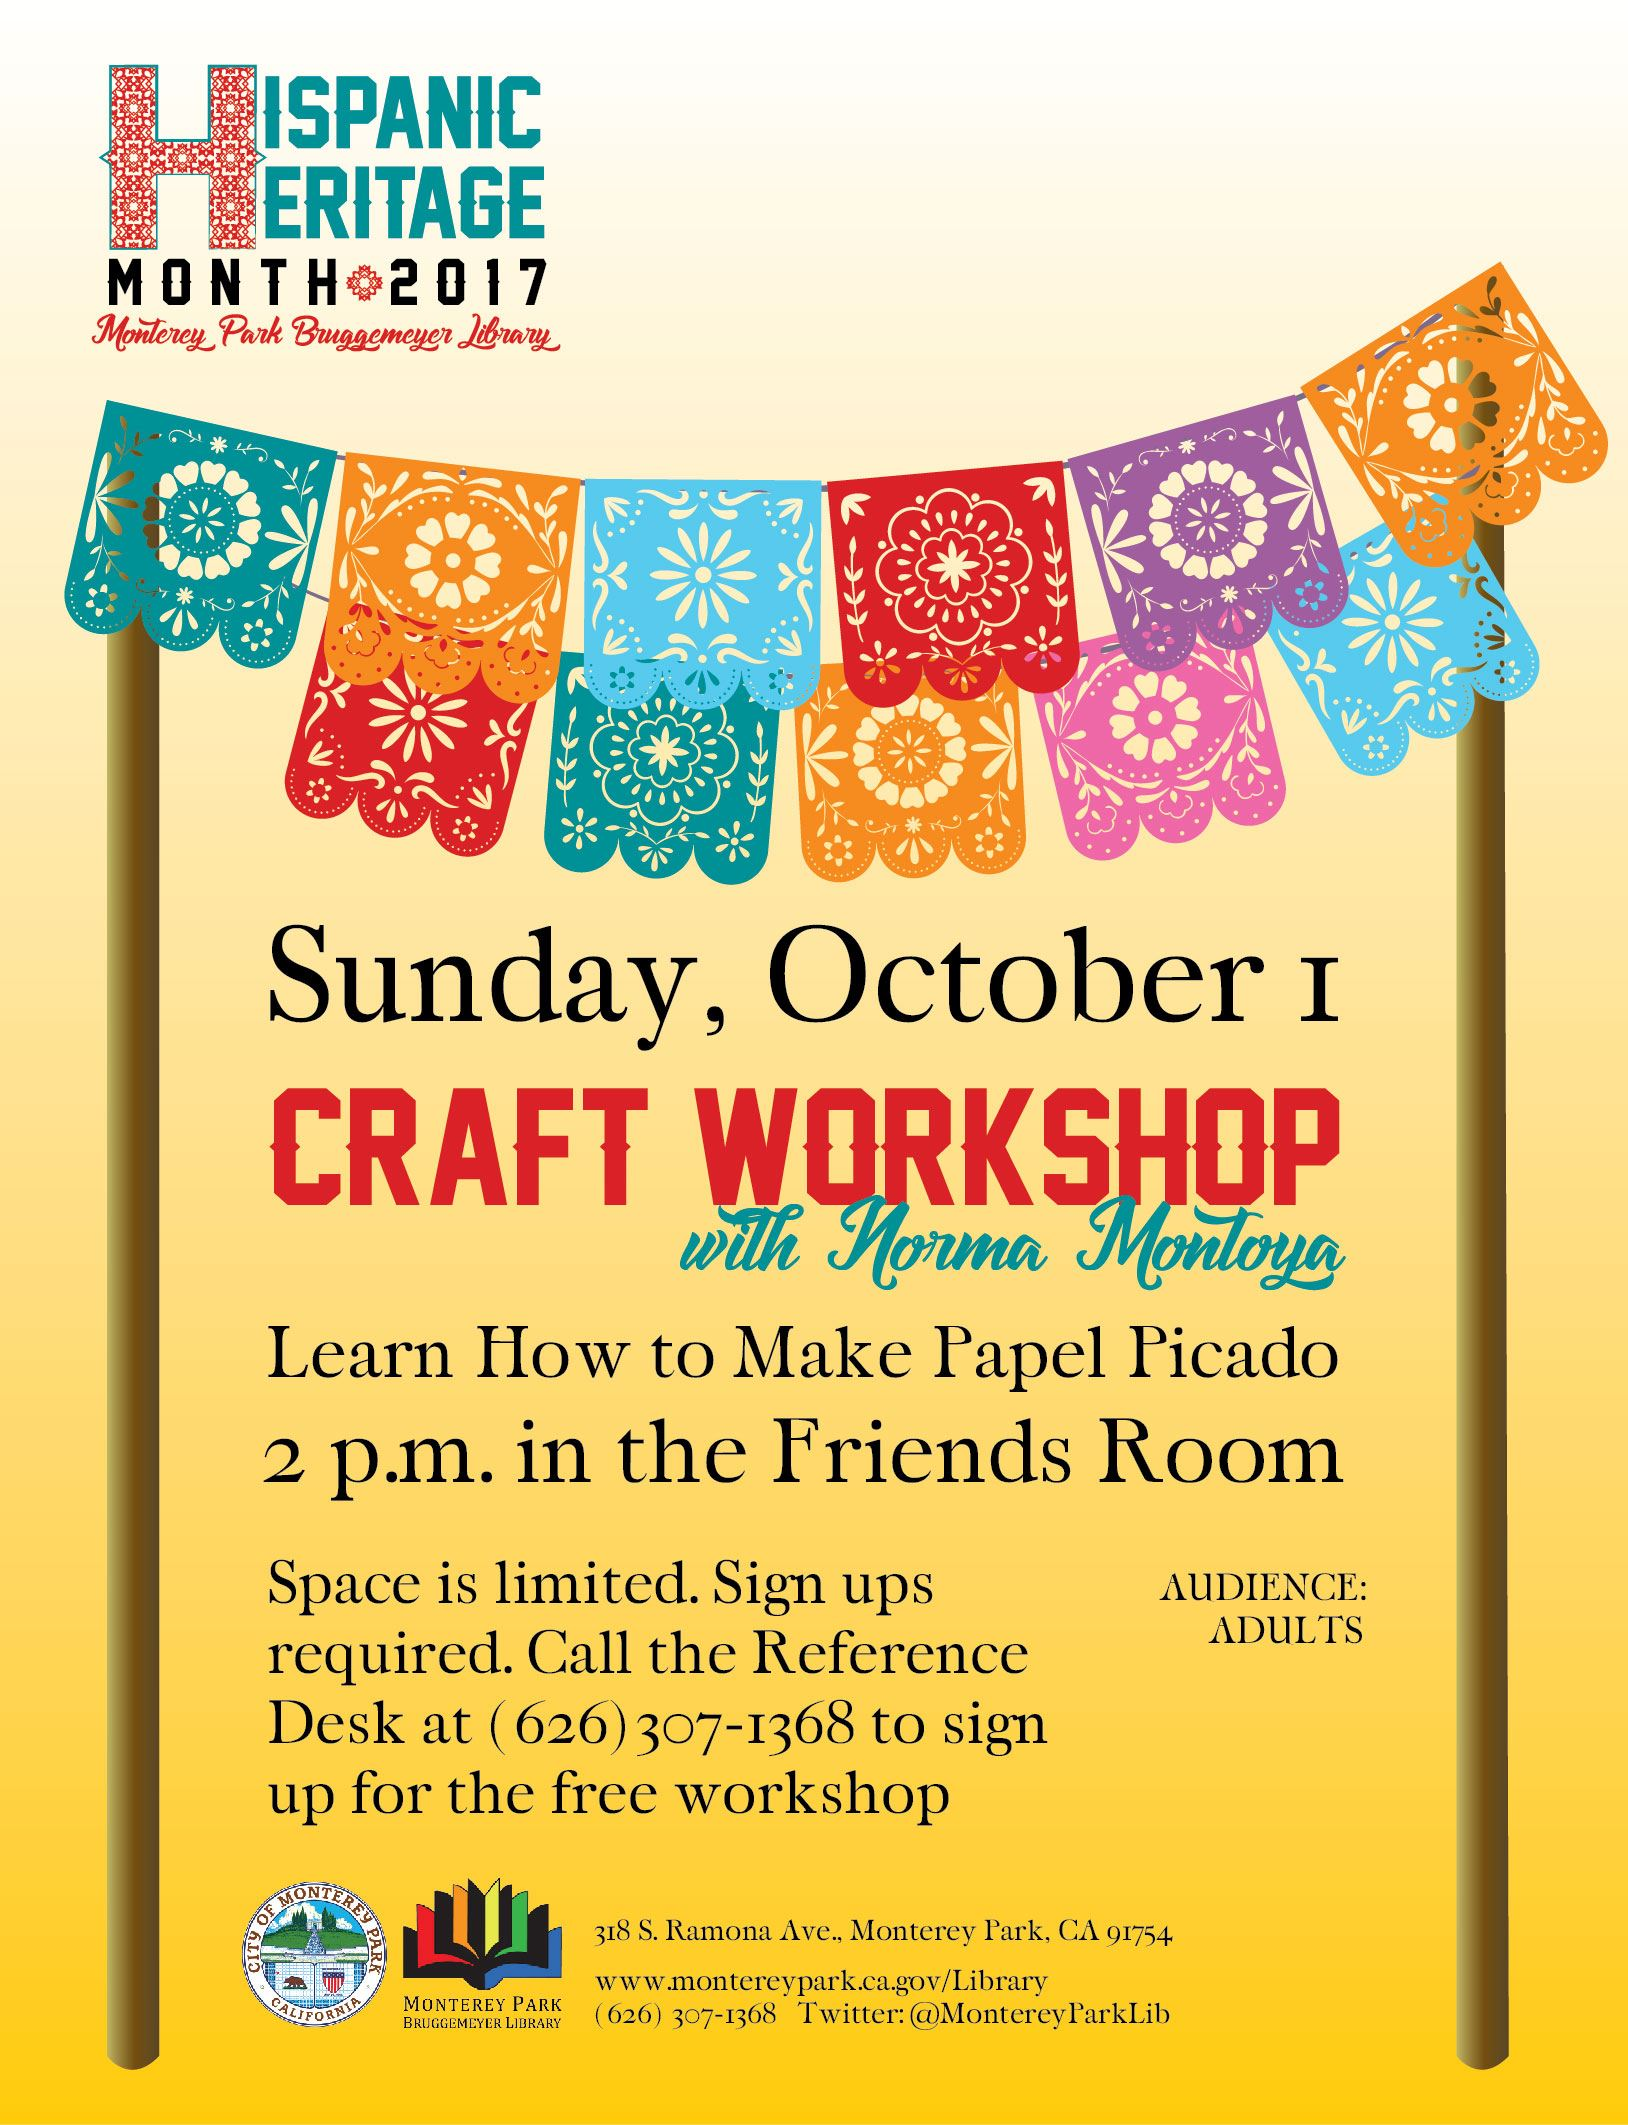 Library Hispanic Heritage Month event-Papel Picado workshop.